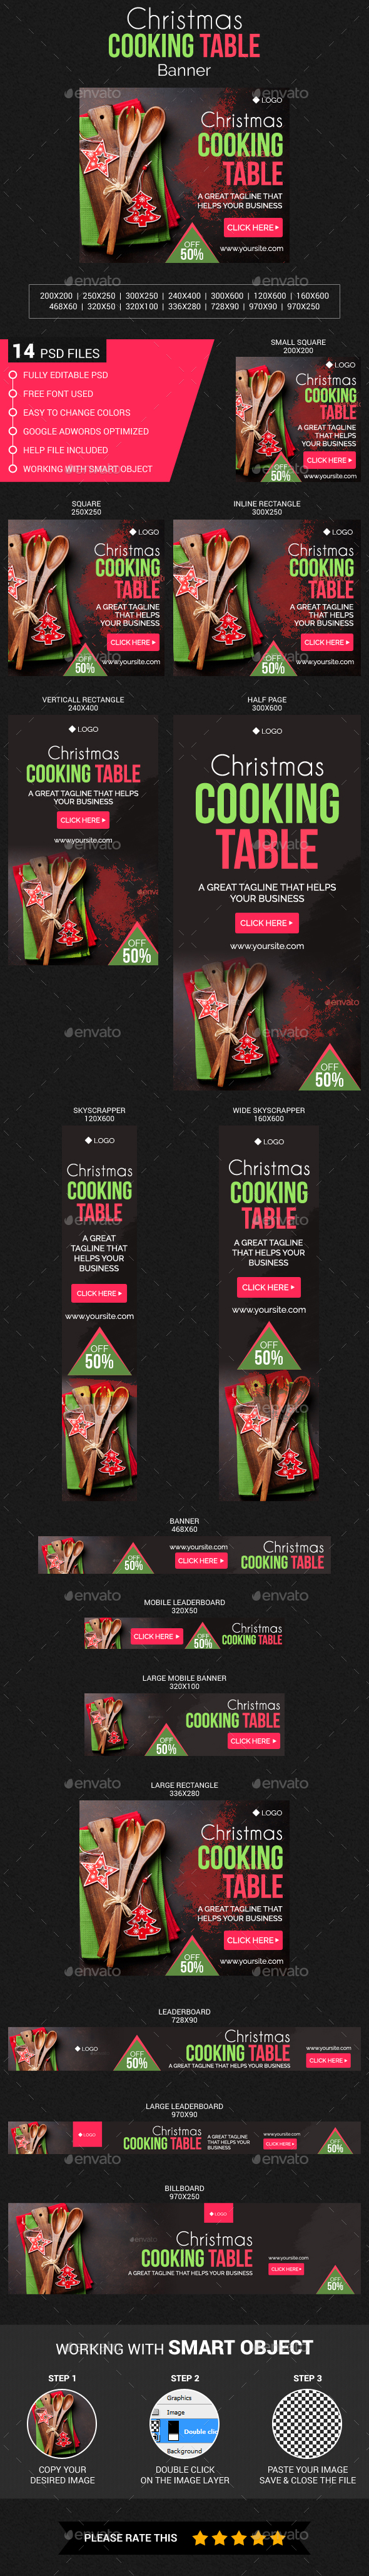 Christmas Cooking Table Banner - Banners & Ads Web Elements